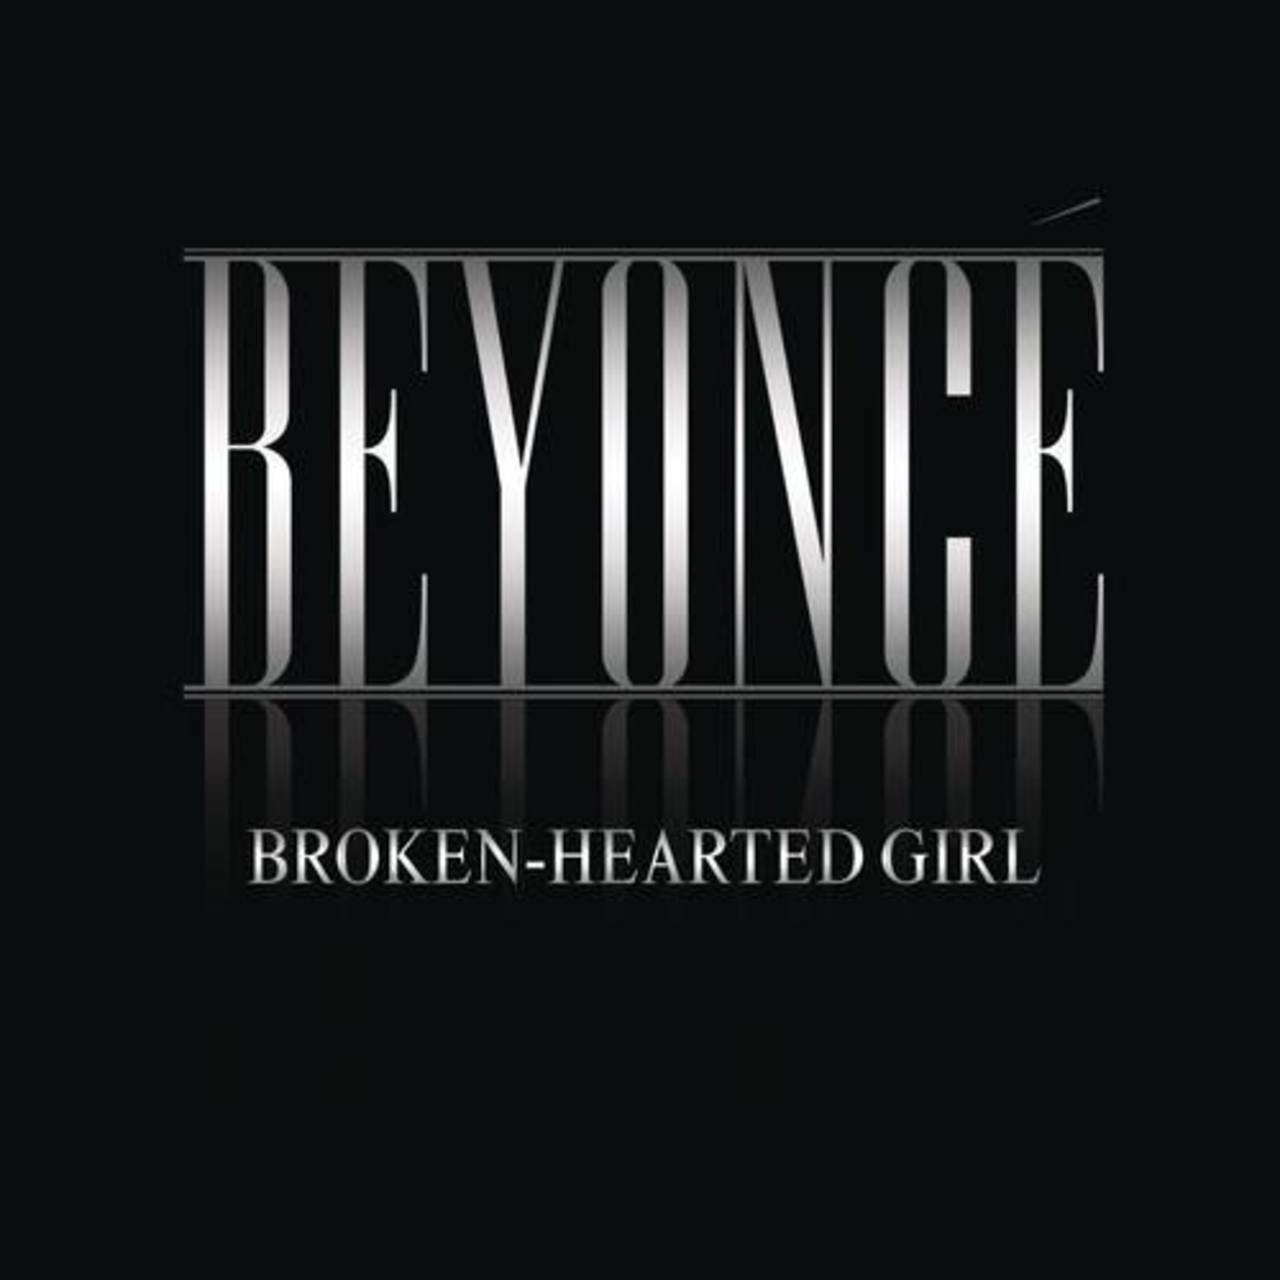 Broken-Hearted Girl (Radio Edits)